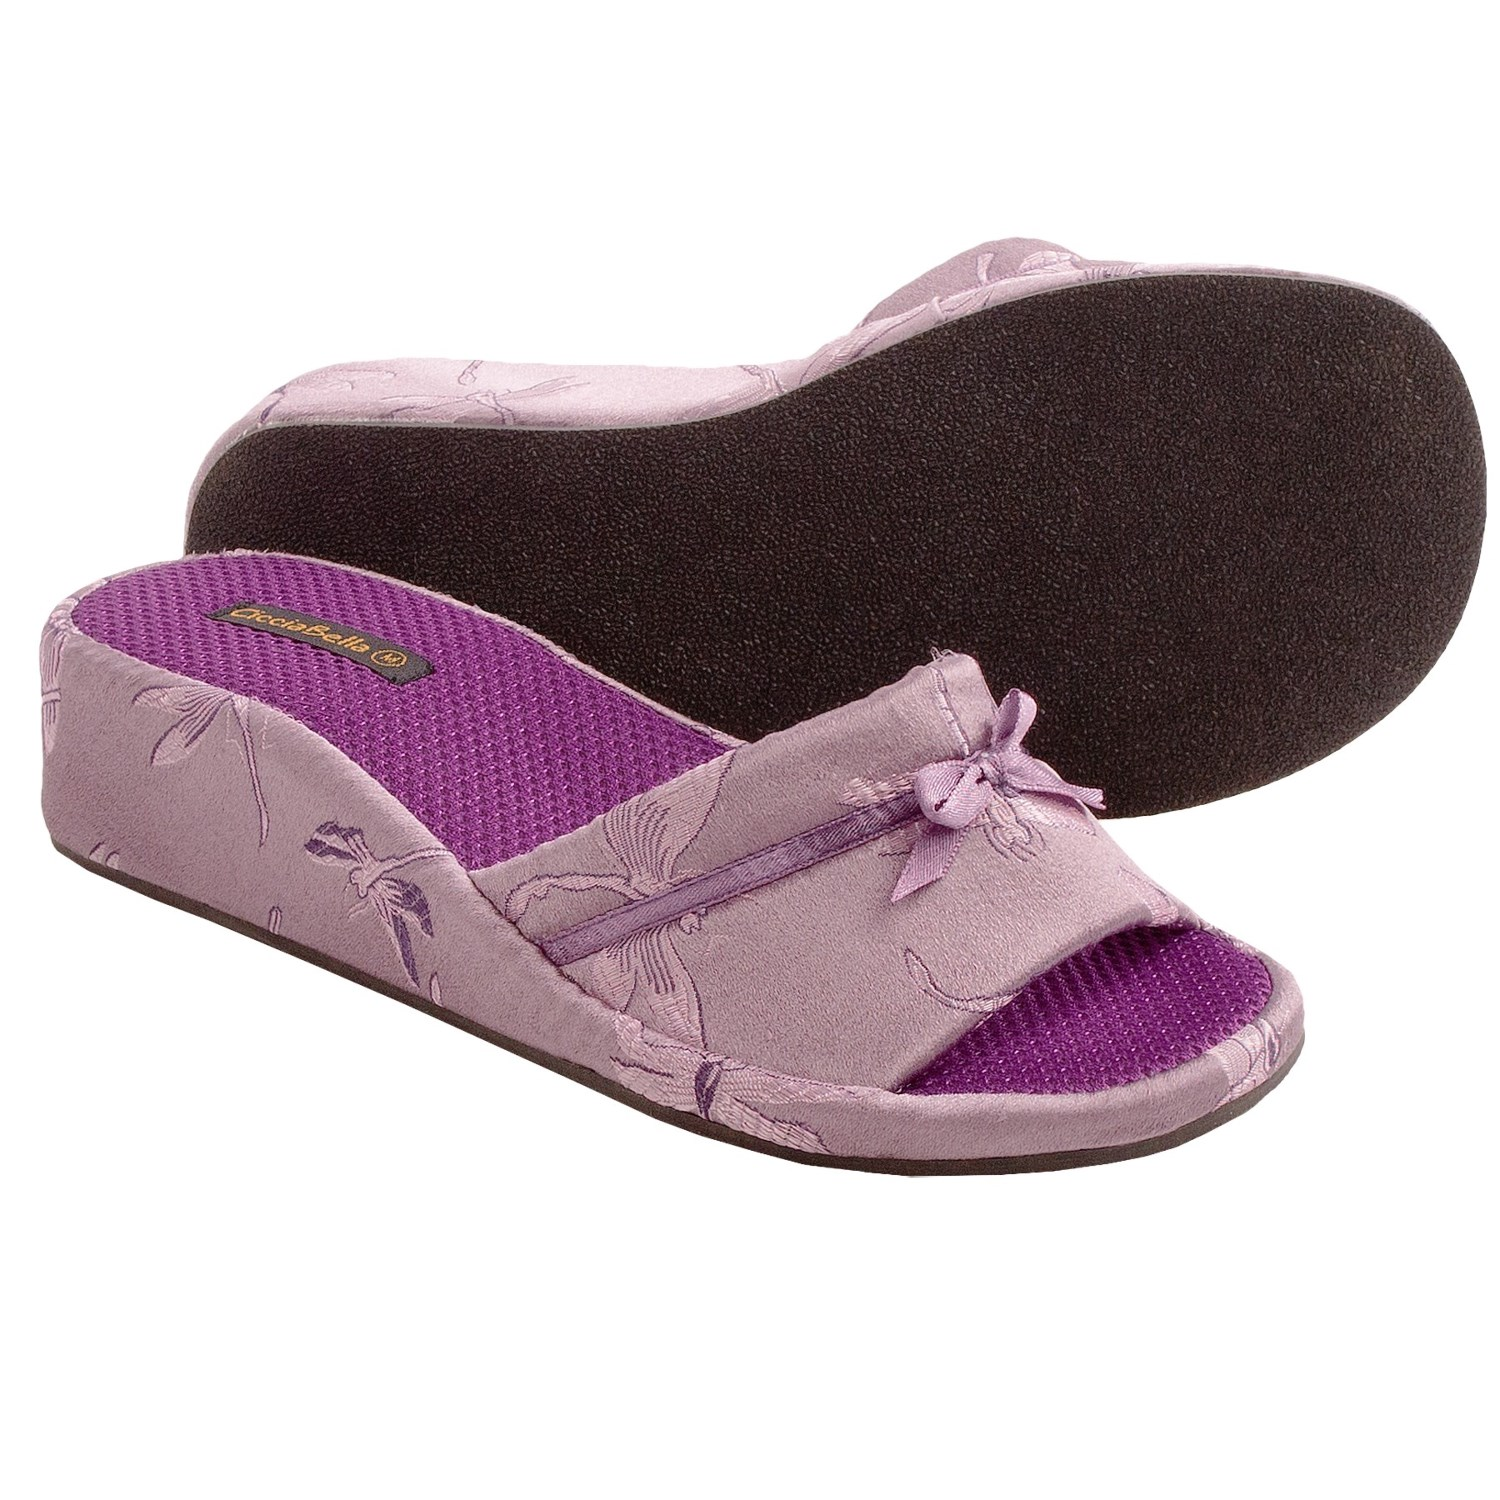 support slippers - 28 images - spenco slide total support